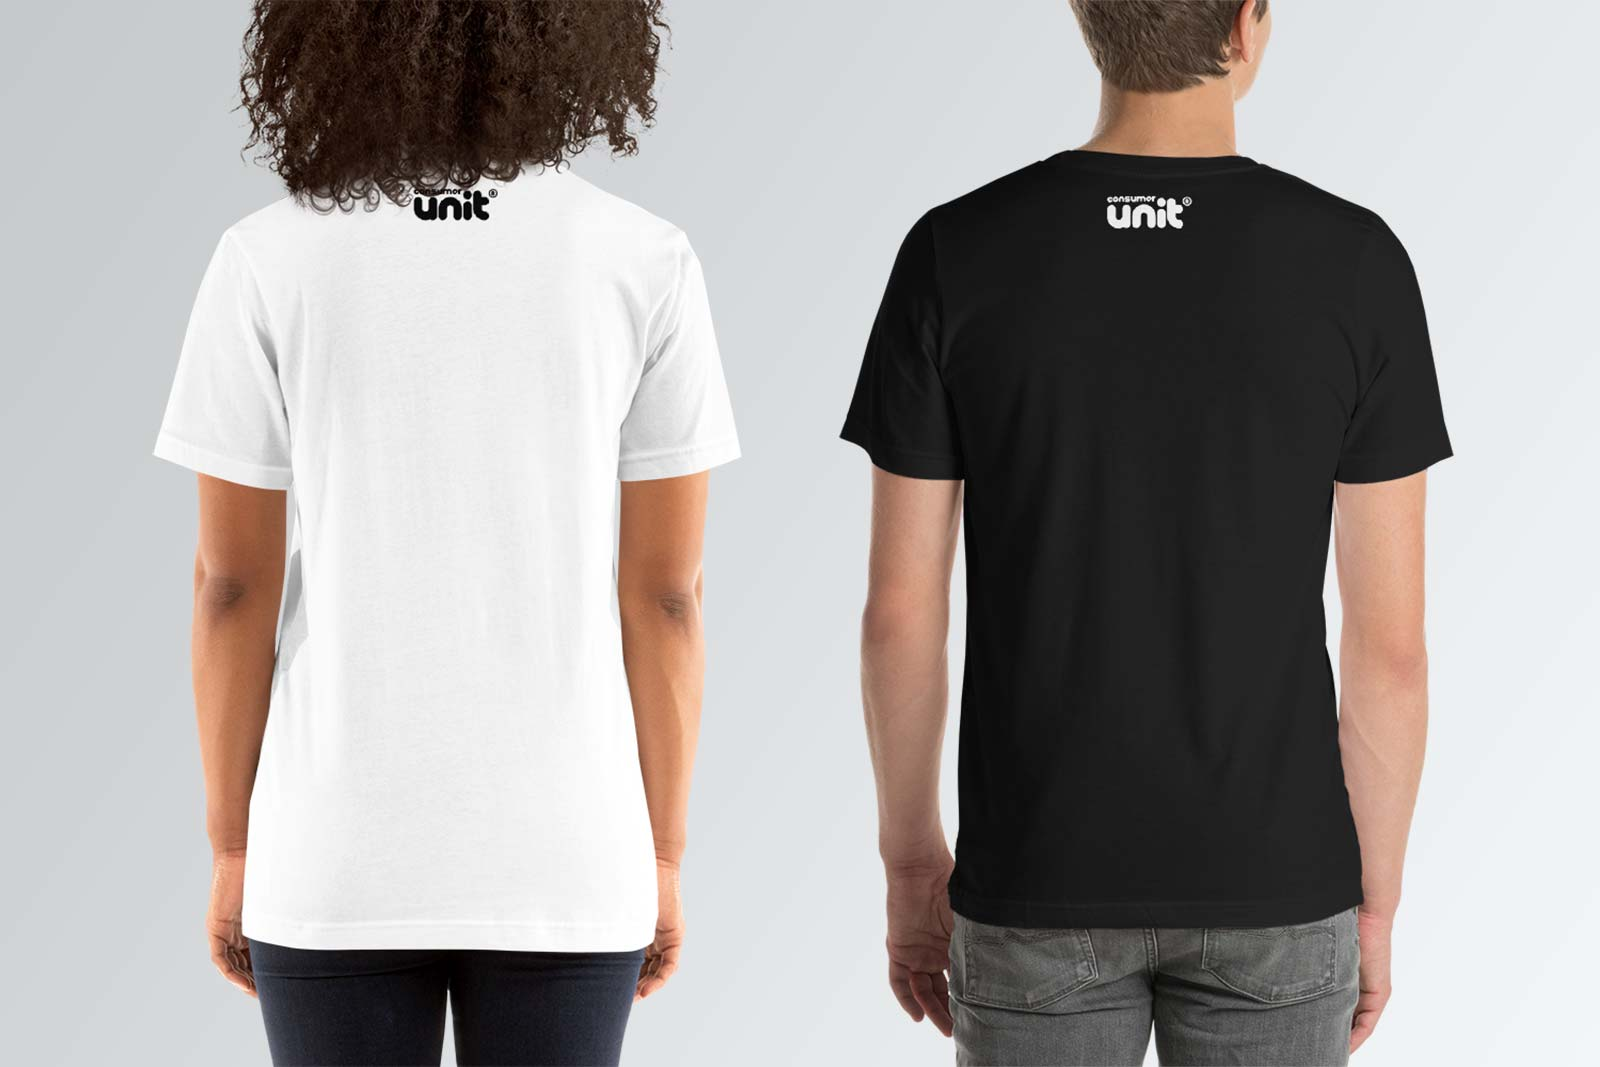 Back label on t-shirt for men in black and white